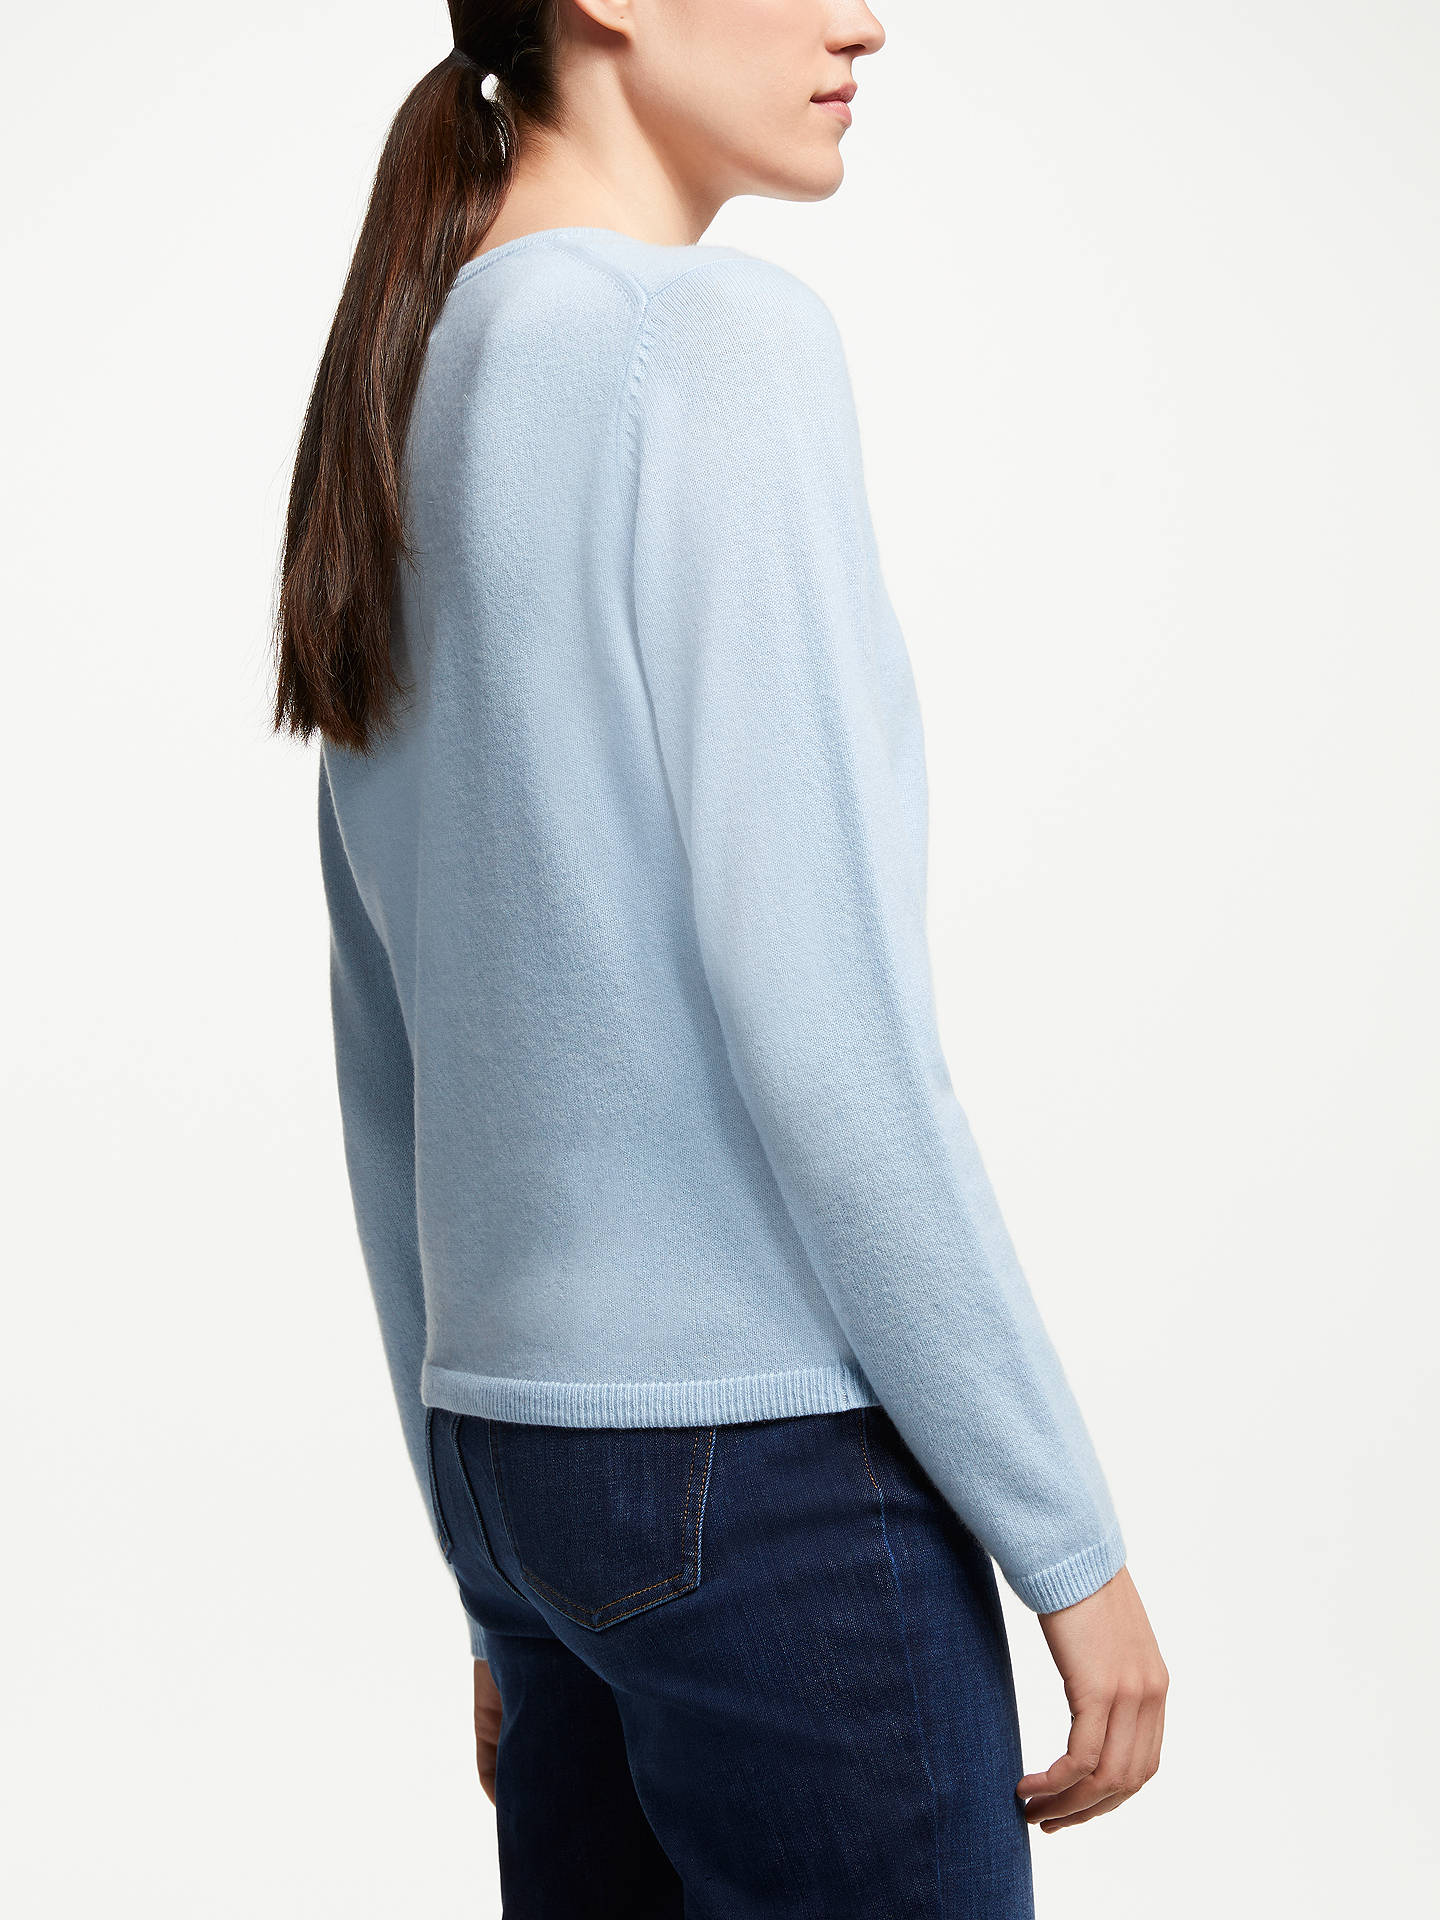 BuyJohn Lewis & Partners Cashmere Crew Neck Cardigan, Pale Blue, 20 Online at johnlewis.com